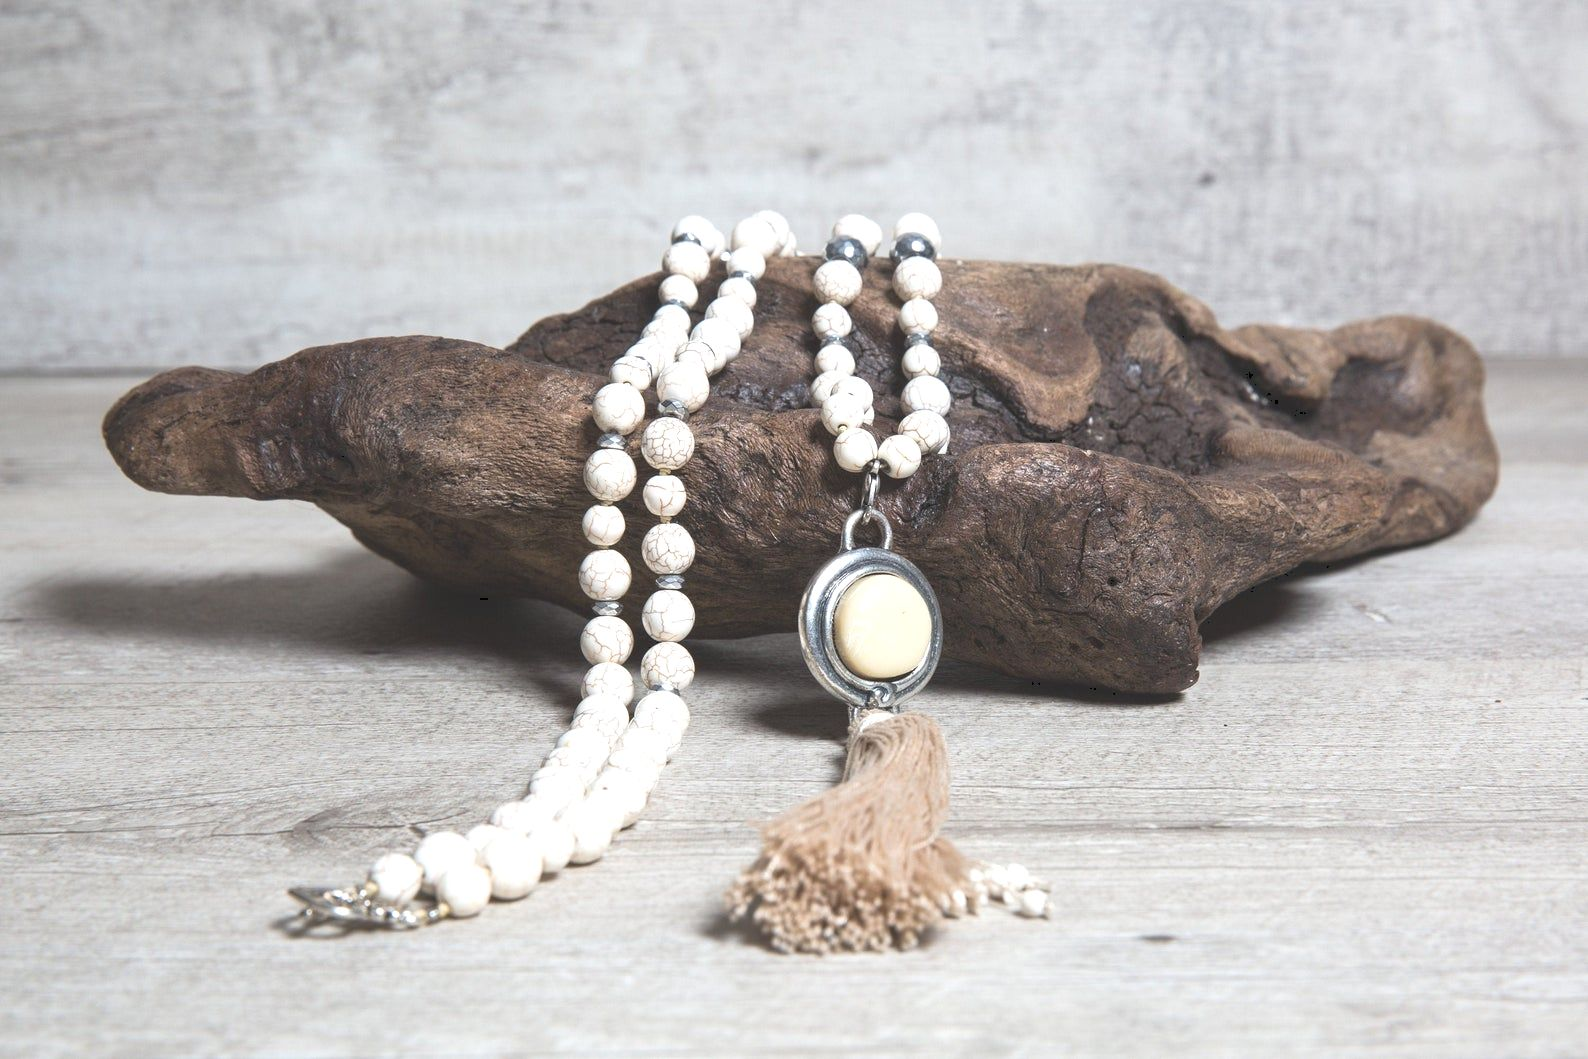 Beige Howlite Long Beaded Necklace with Silver Hematite, Ivory Stone Pendant and Handmade Tassel, Boho Jewelry Gifts